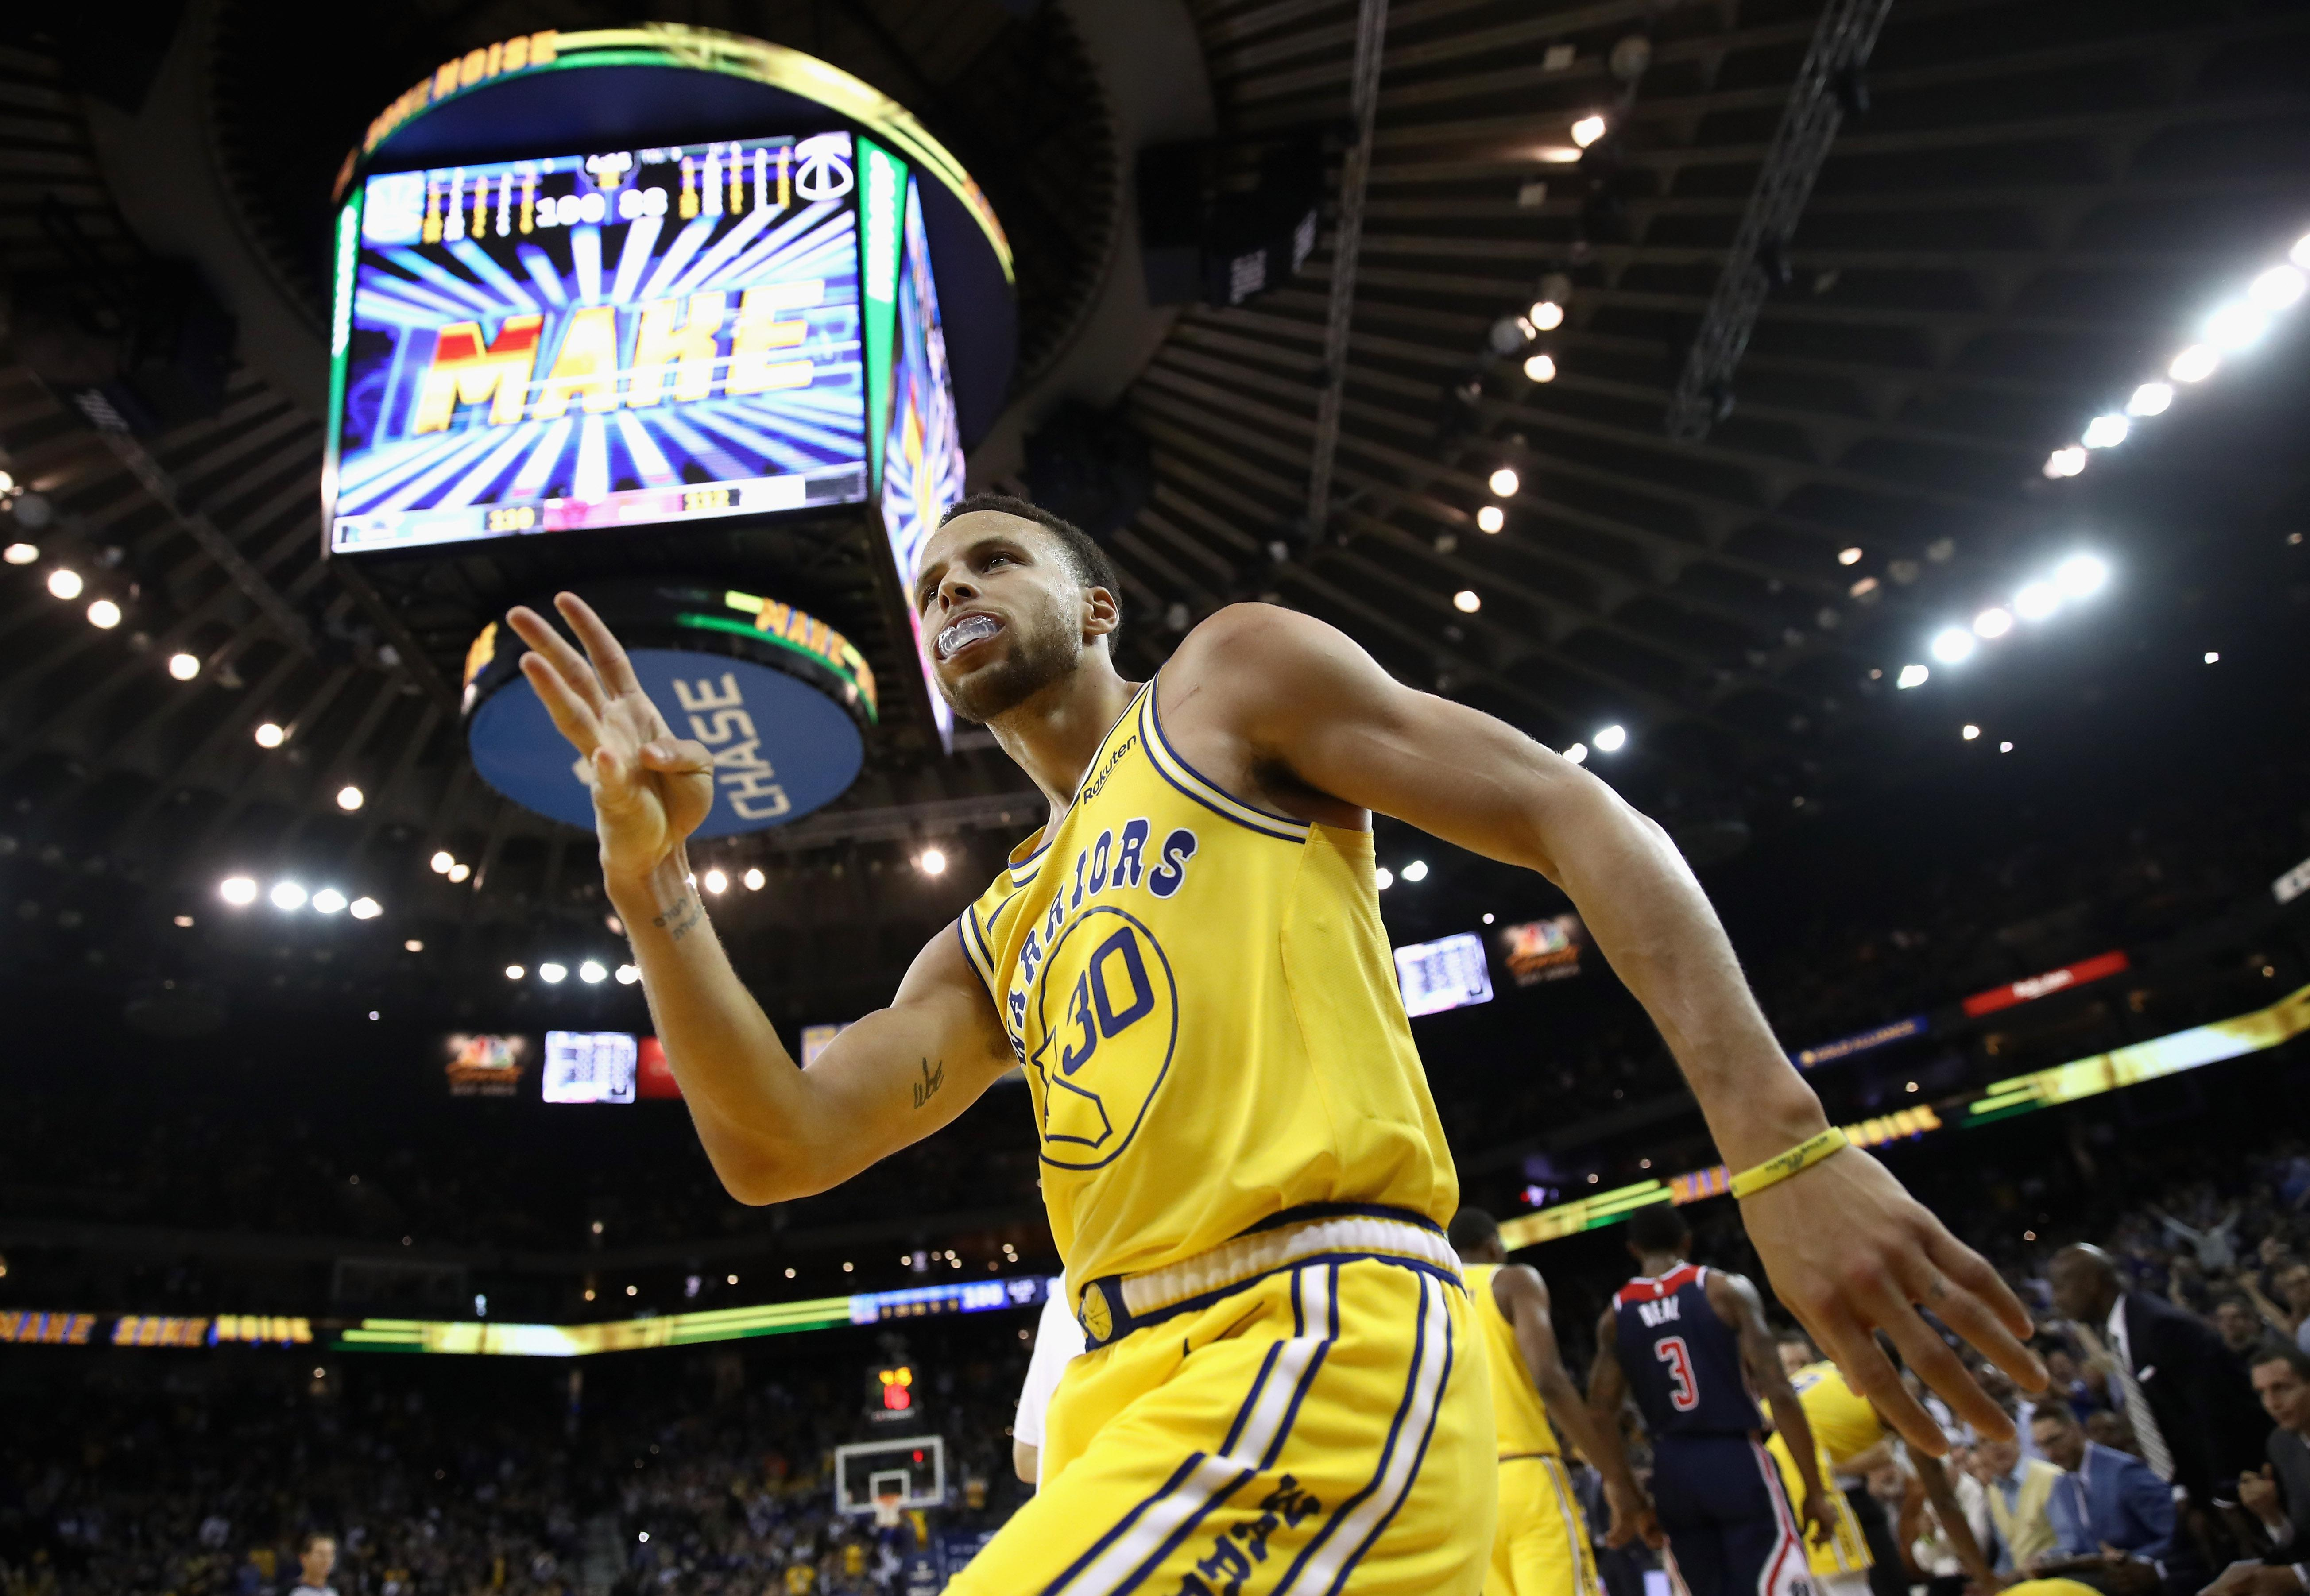 OAKLAND, CA - OCTOBER 24:  Stephen Curry #30 of the Golden State Warriors reacts after he made a three-point basket and was fouled by the Washington Wizards at ORACLE Arena on October 24, 2018 in Oakland, California.  NOTE TO USER: User expressly acknowledges and agrees that, by downloading and or using this photograph, User is consenting to the terms and conditions of the Getty Images License Agreement.  (Photo by Ezra Shaw/Getty Images)